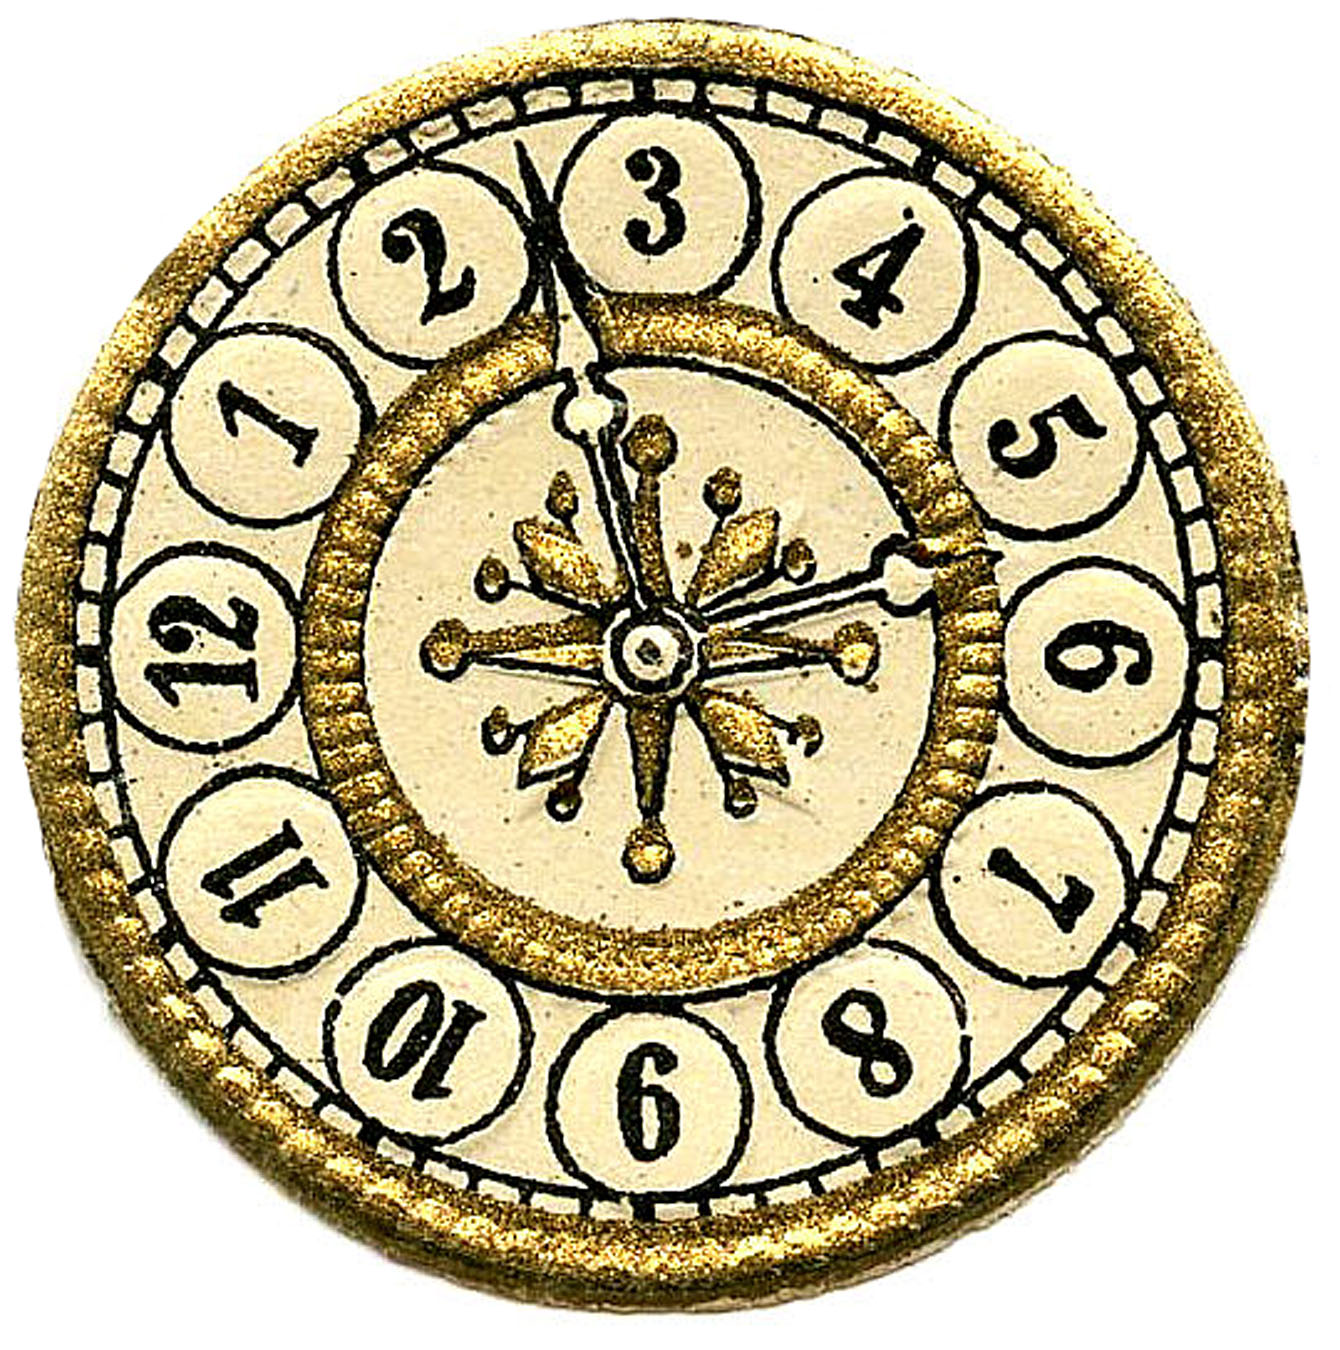 Vintage Clip Art - Scrap Clock Faces - Steampunk - The Graphics Fairy